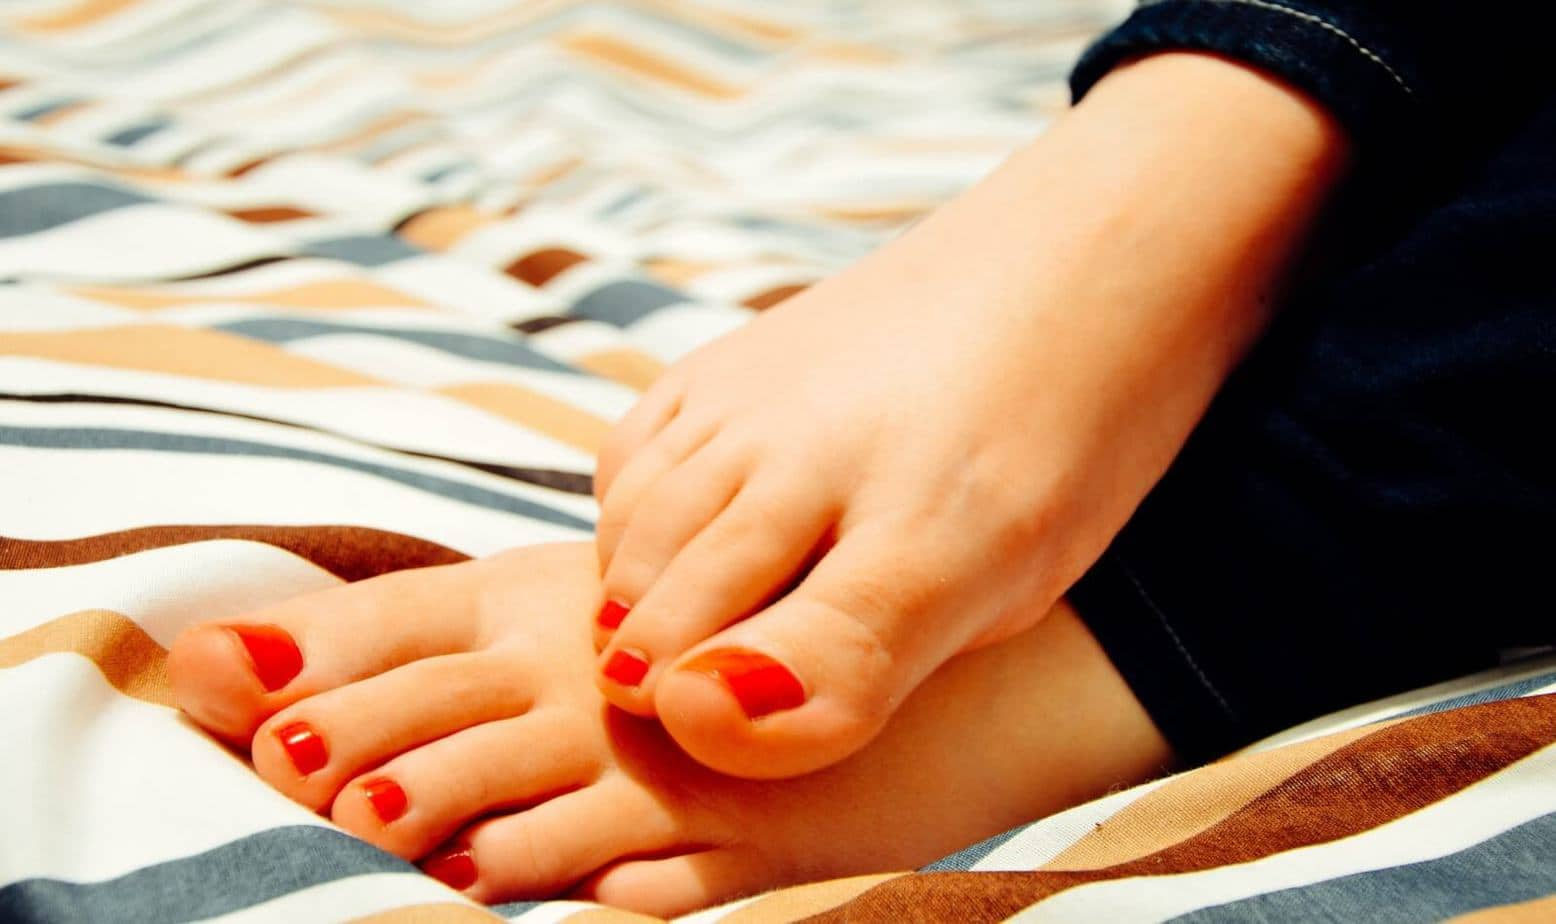 a flawless feet with red pedicure